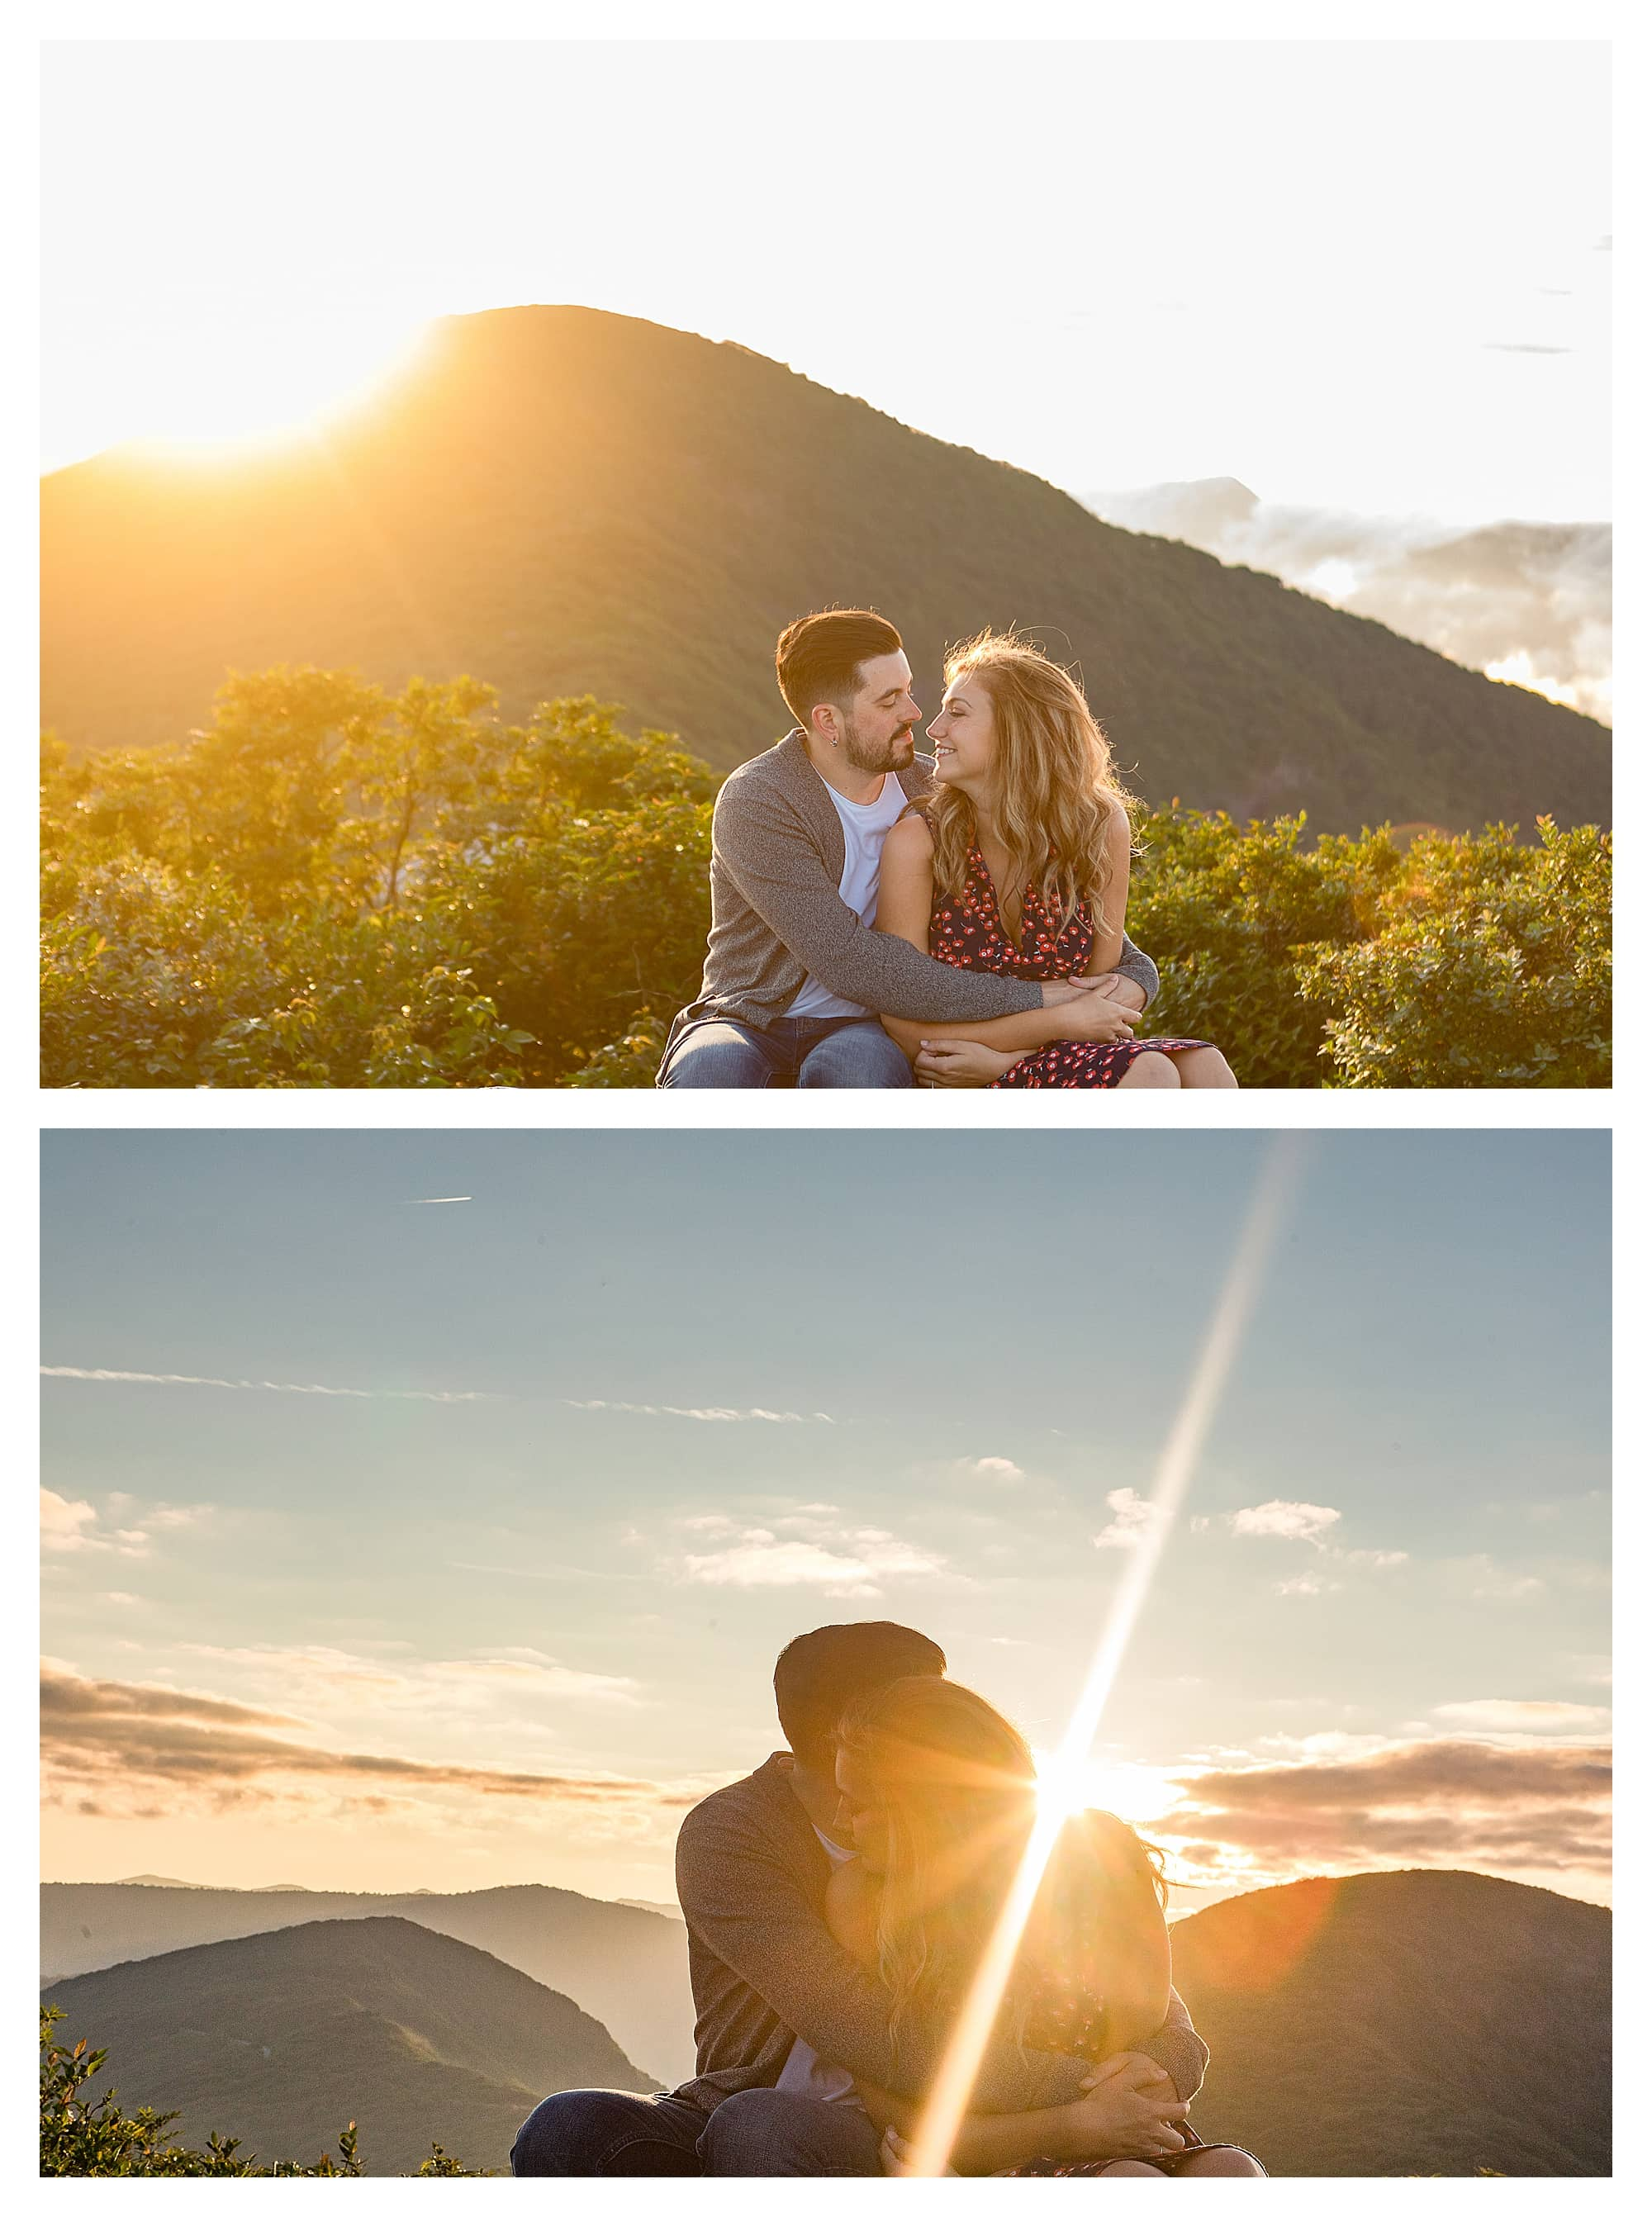 Engaged couple kissing while sitting on brick wall with sunrise and mountains in background